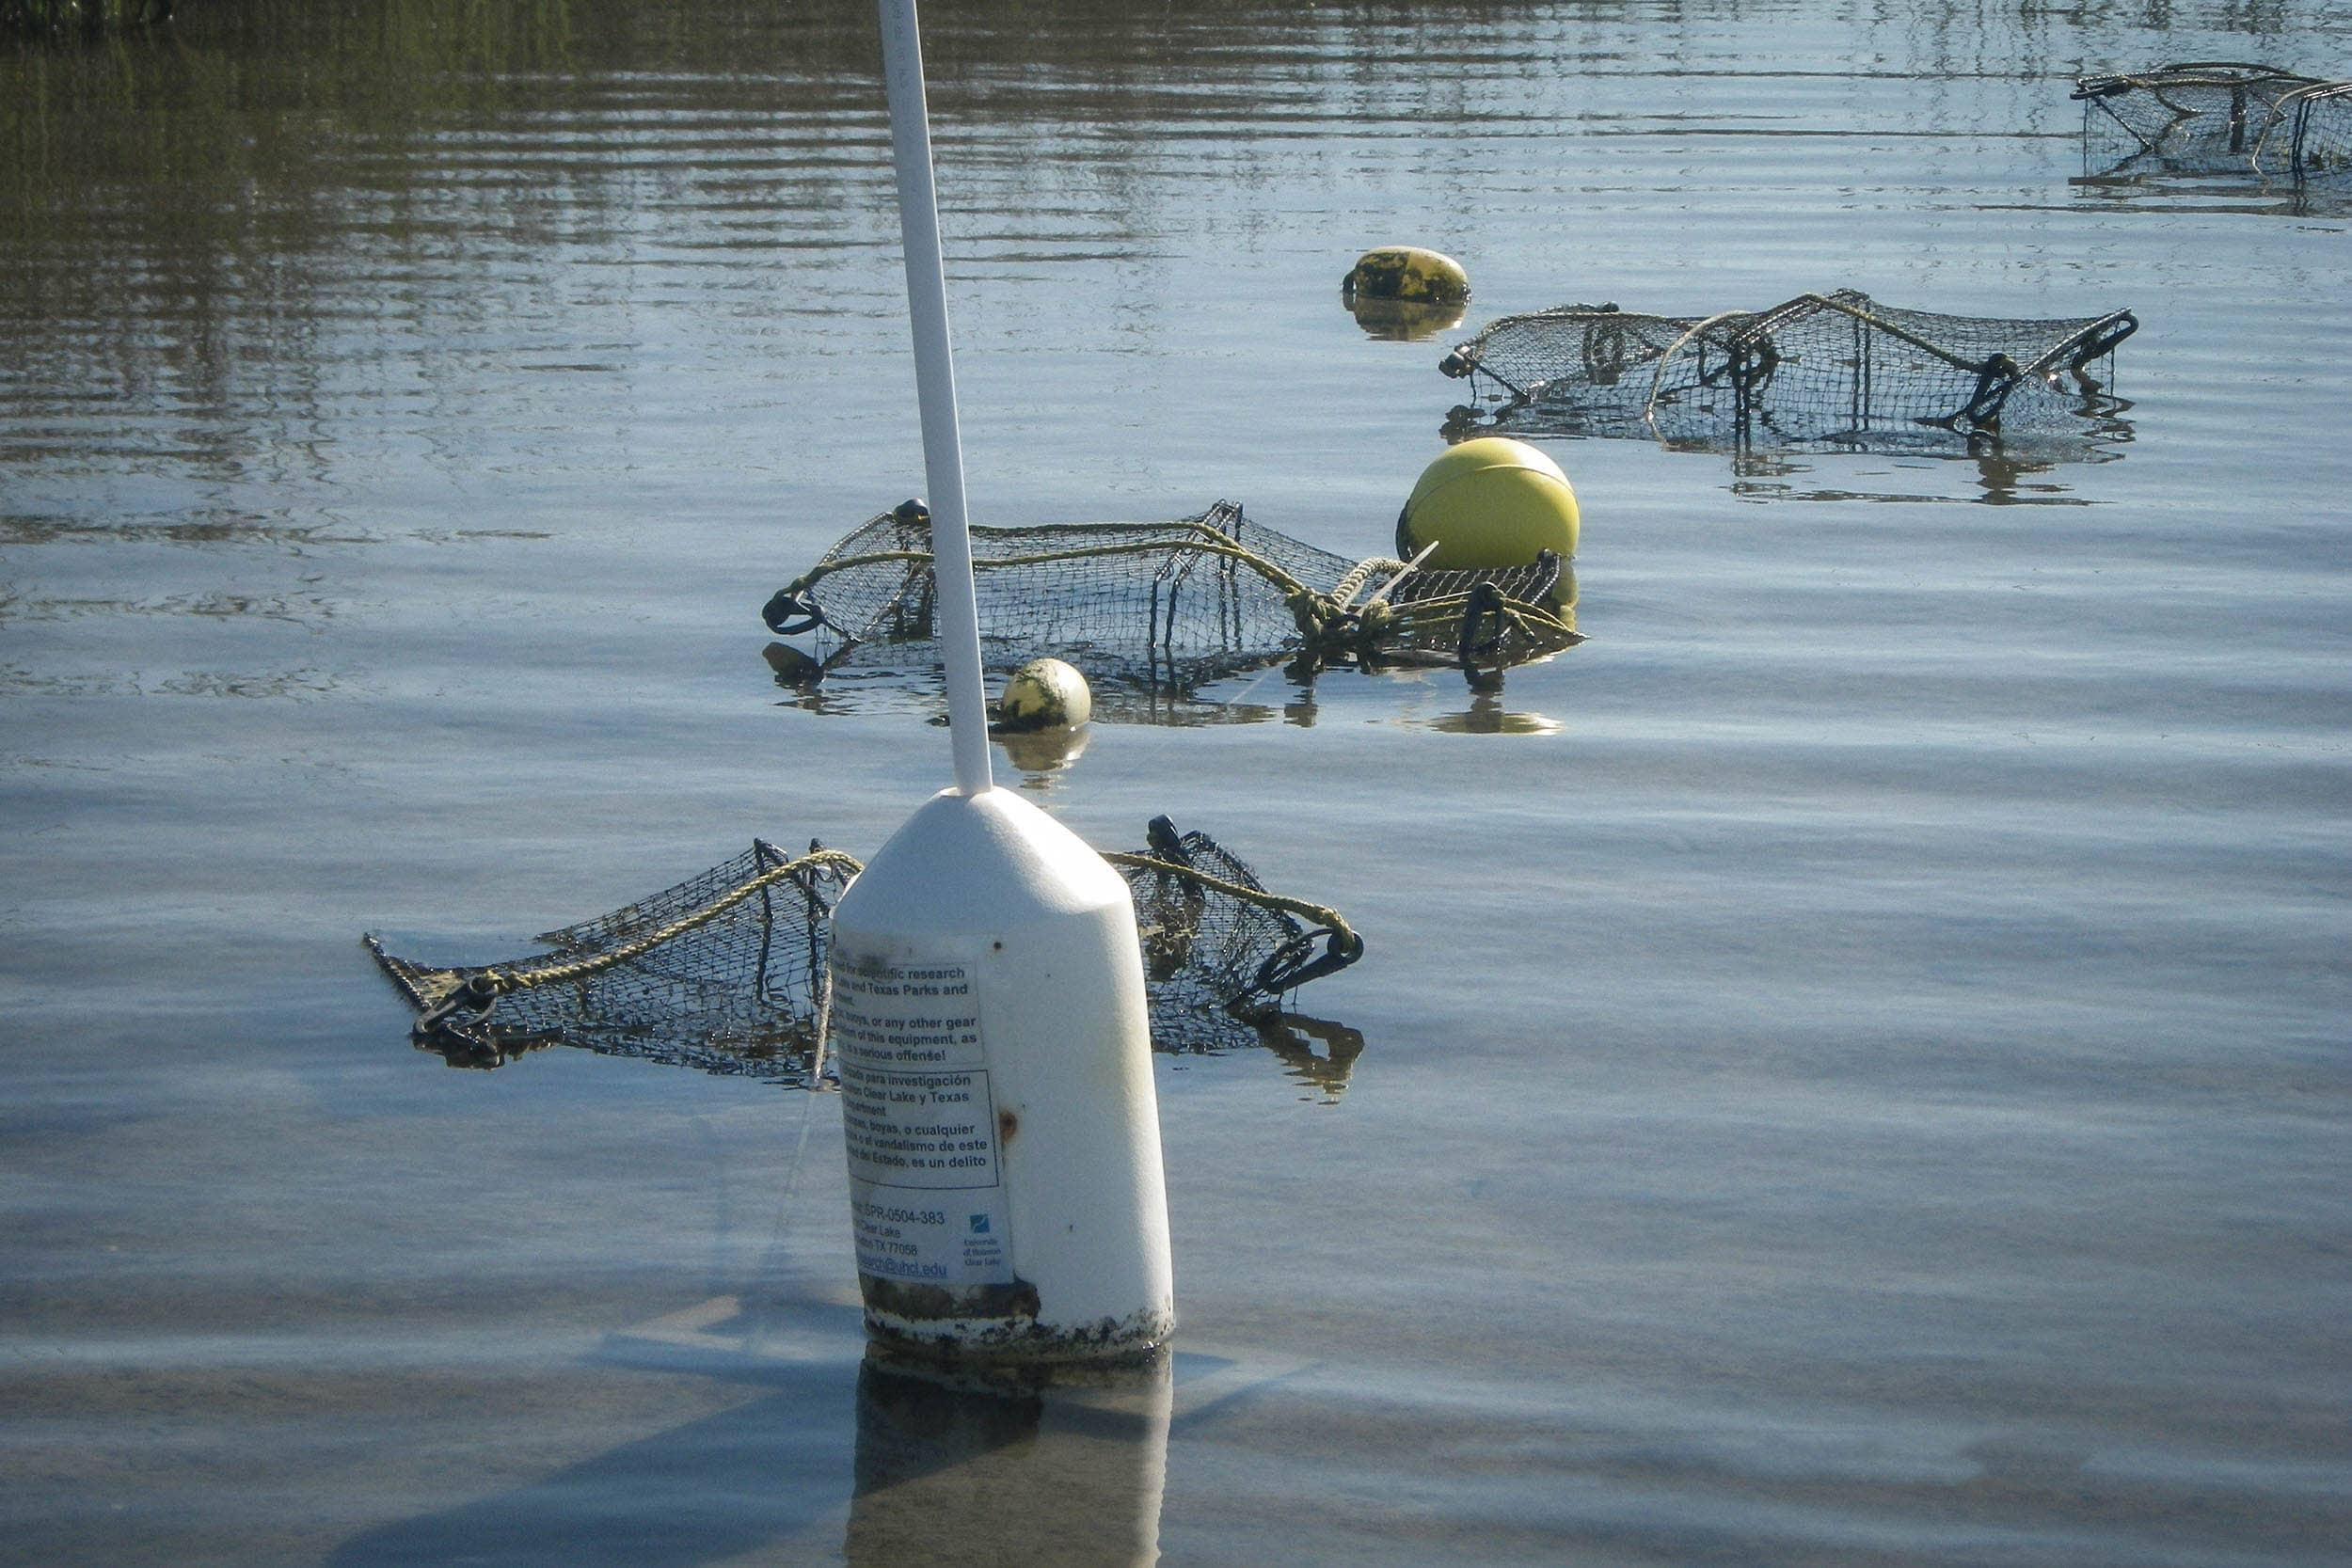 Deployed Crab Traps